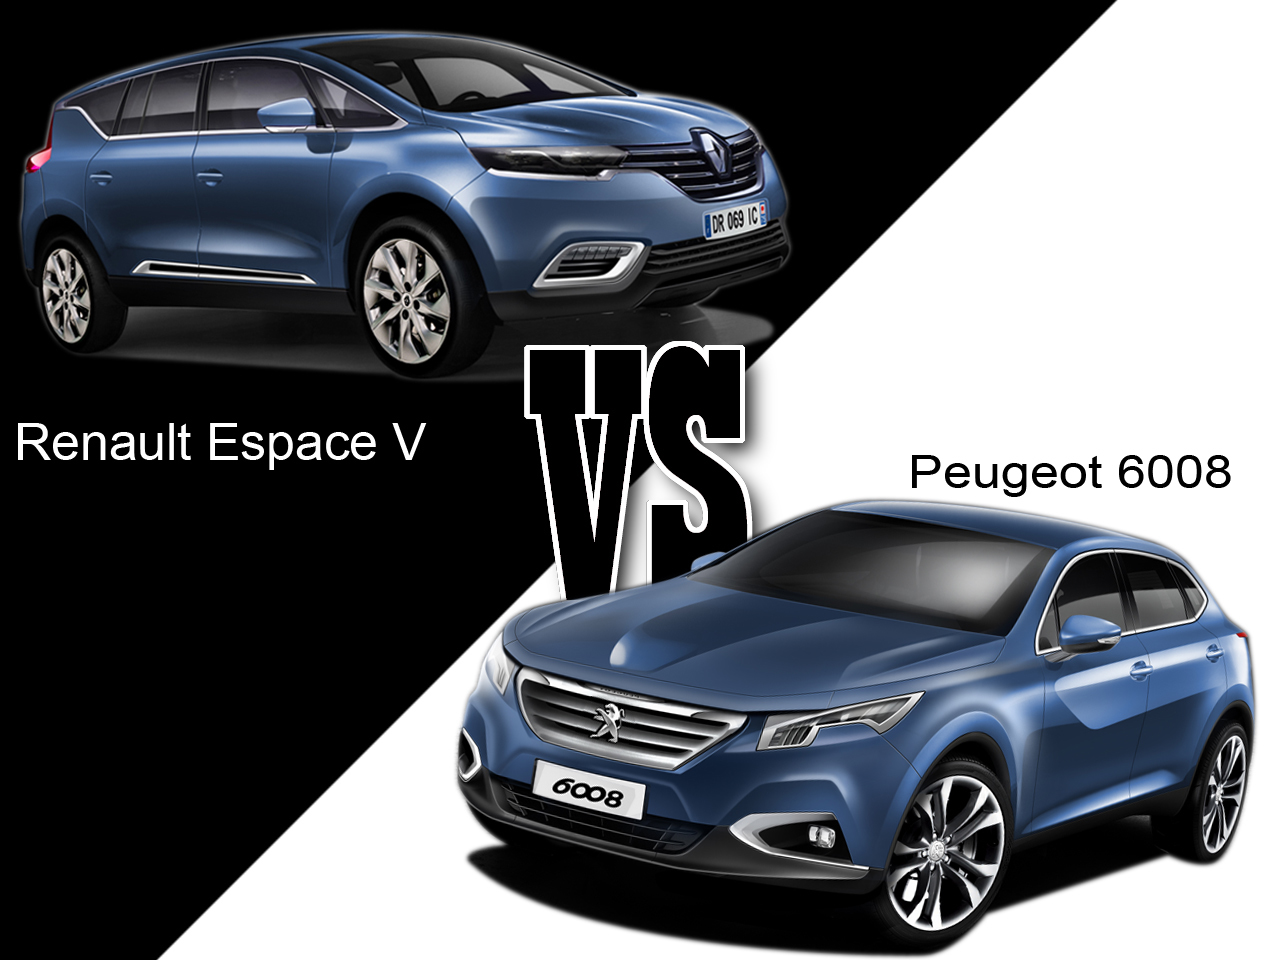 renault espace v vs peugeot 6008 le renouveau du haut de gamme l 39 argus. Black Bedroom Furniture Sets. Home Design Ideas